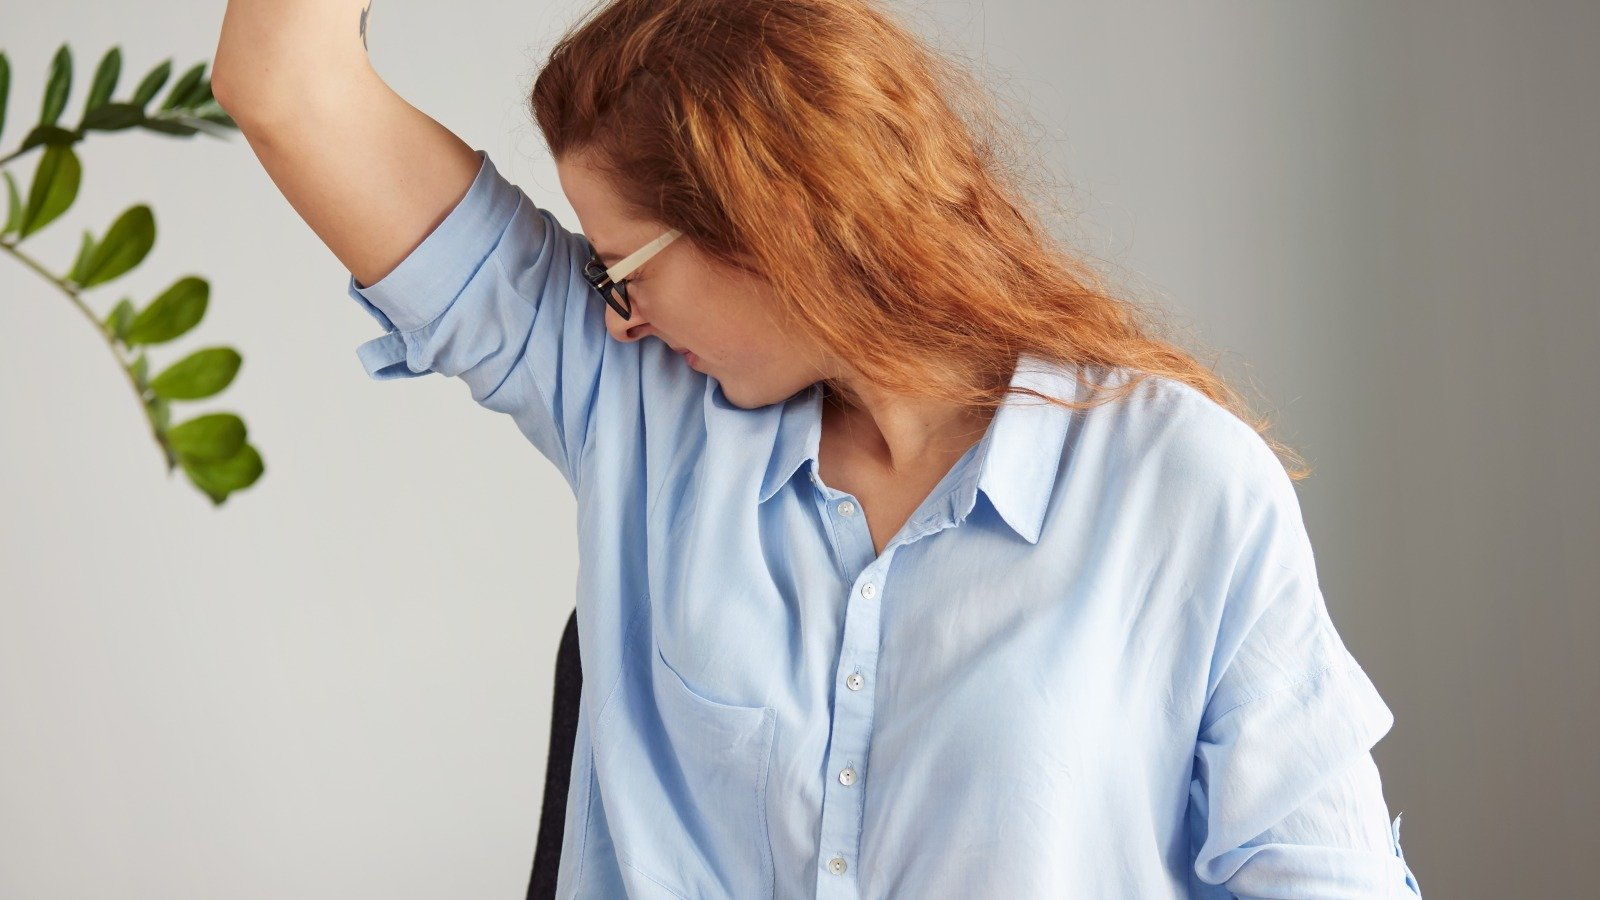 Surprising Things Your Body Odor Is Trying To Tell You